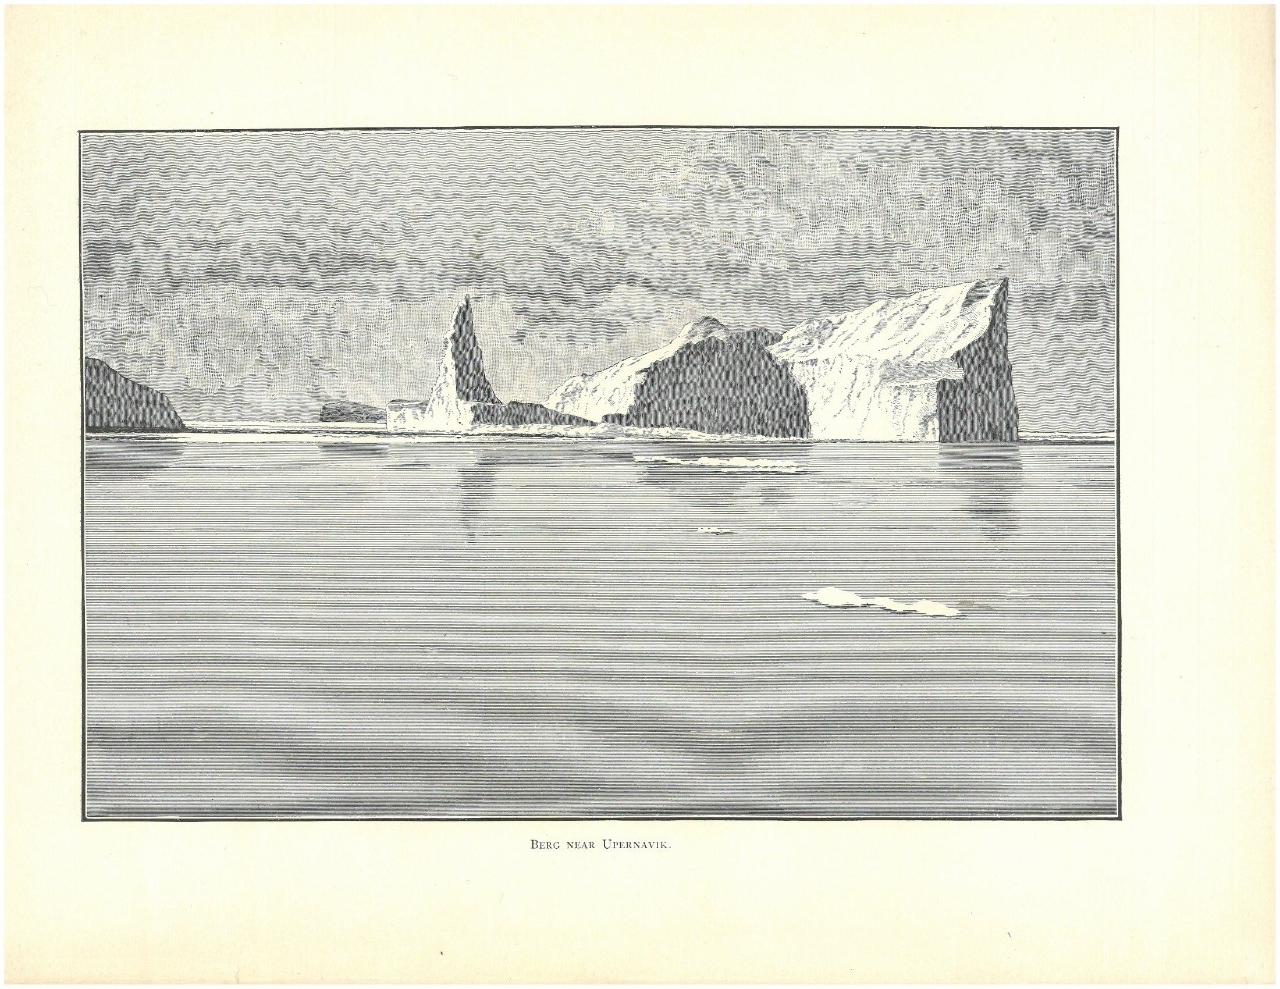 42f4fc883c4a1 Greely Relief Expedition